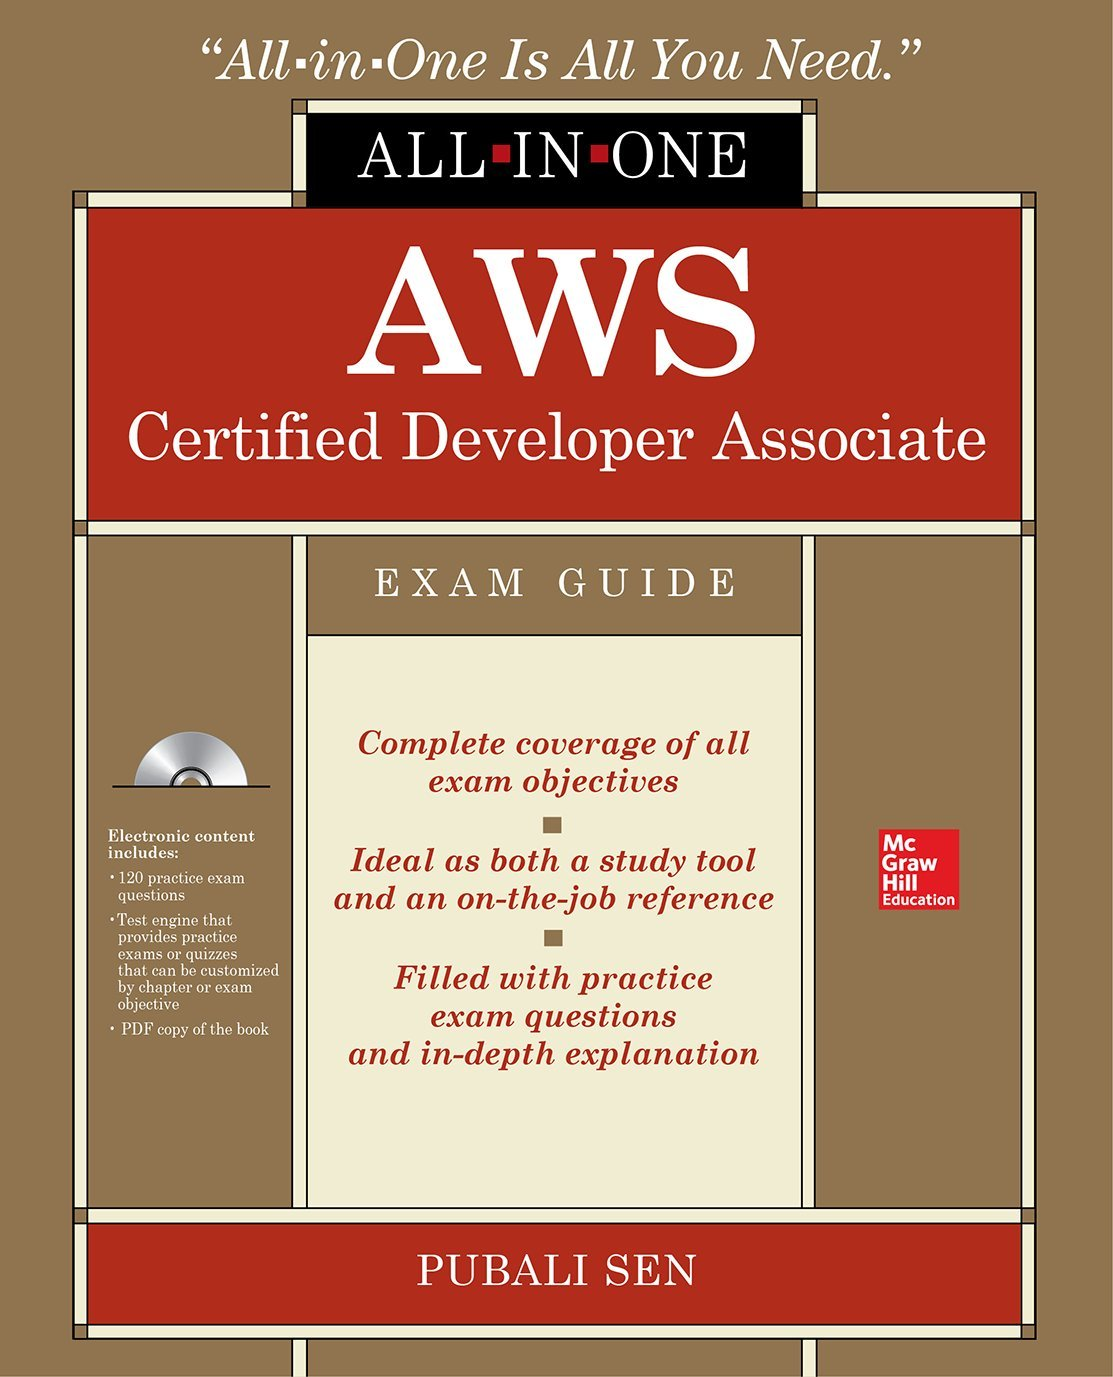 Aws certified developer associate all in one exam guide amazon aws certified developer associate all in one exam guide amazon pubali sen books 1betcityfo Image collections